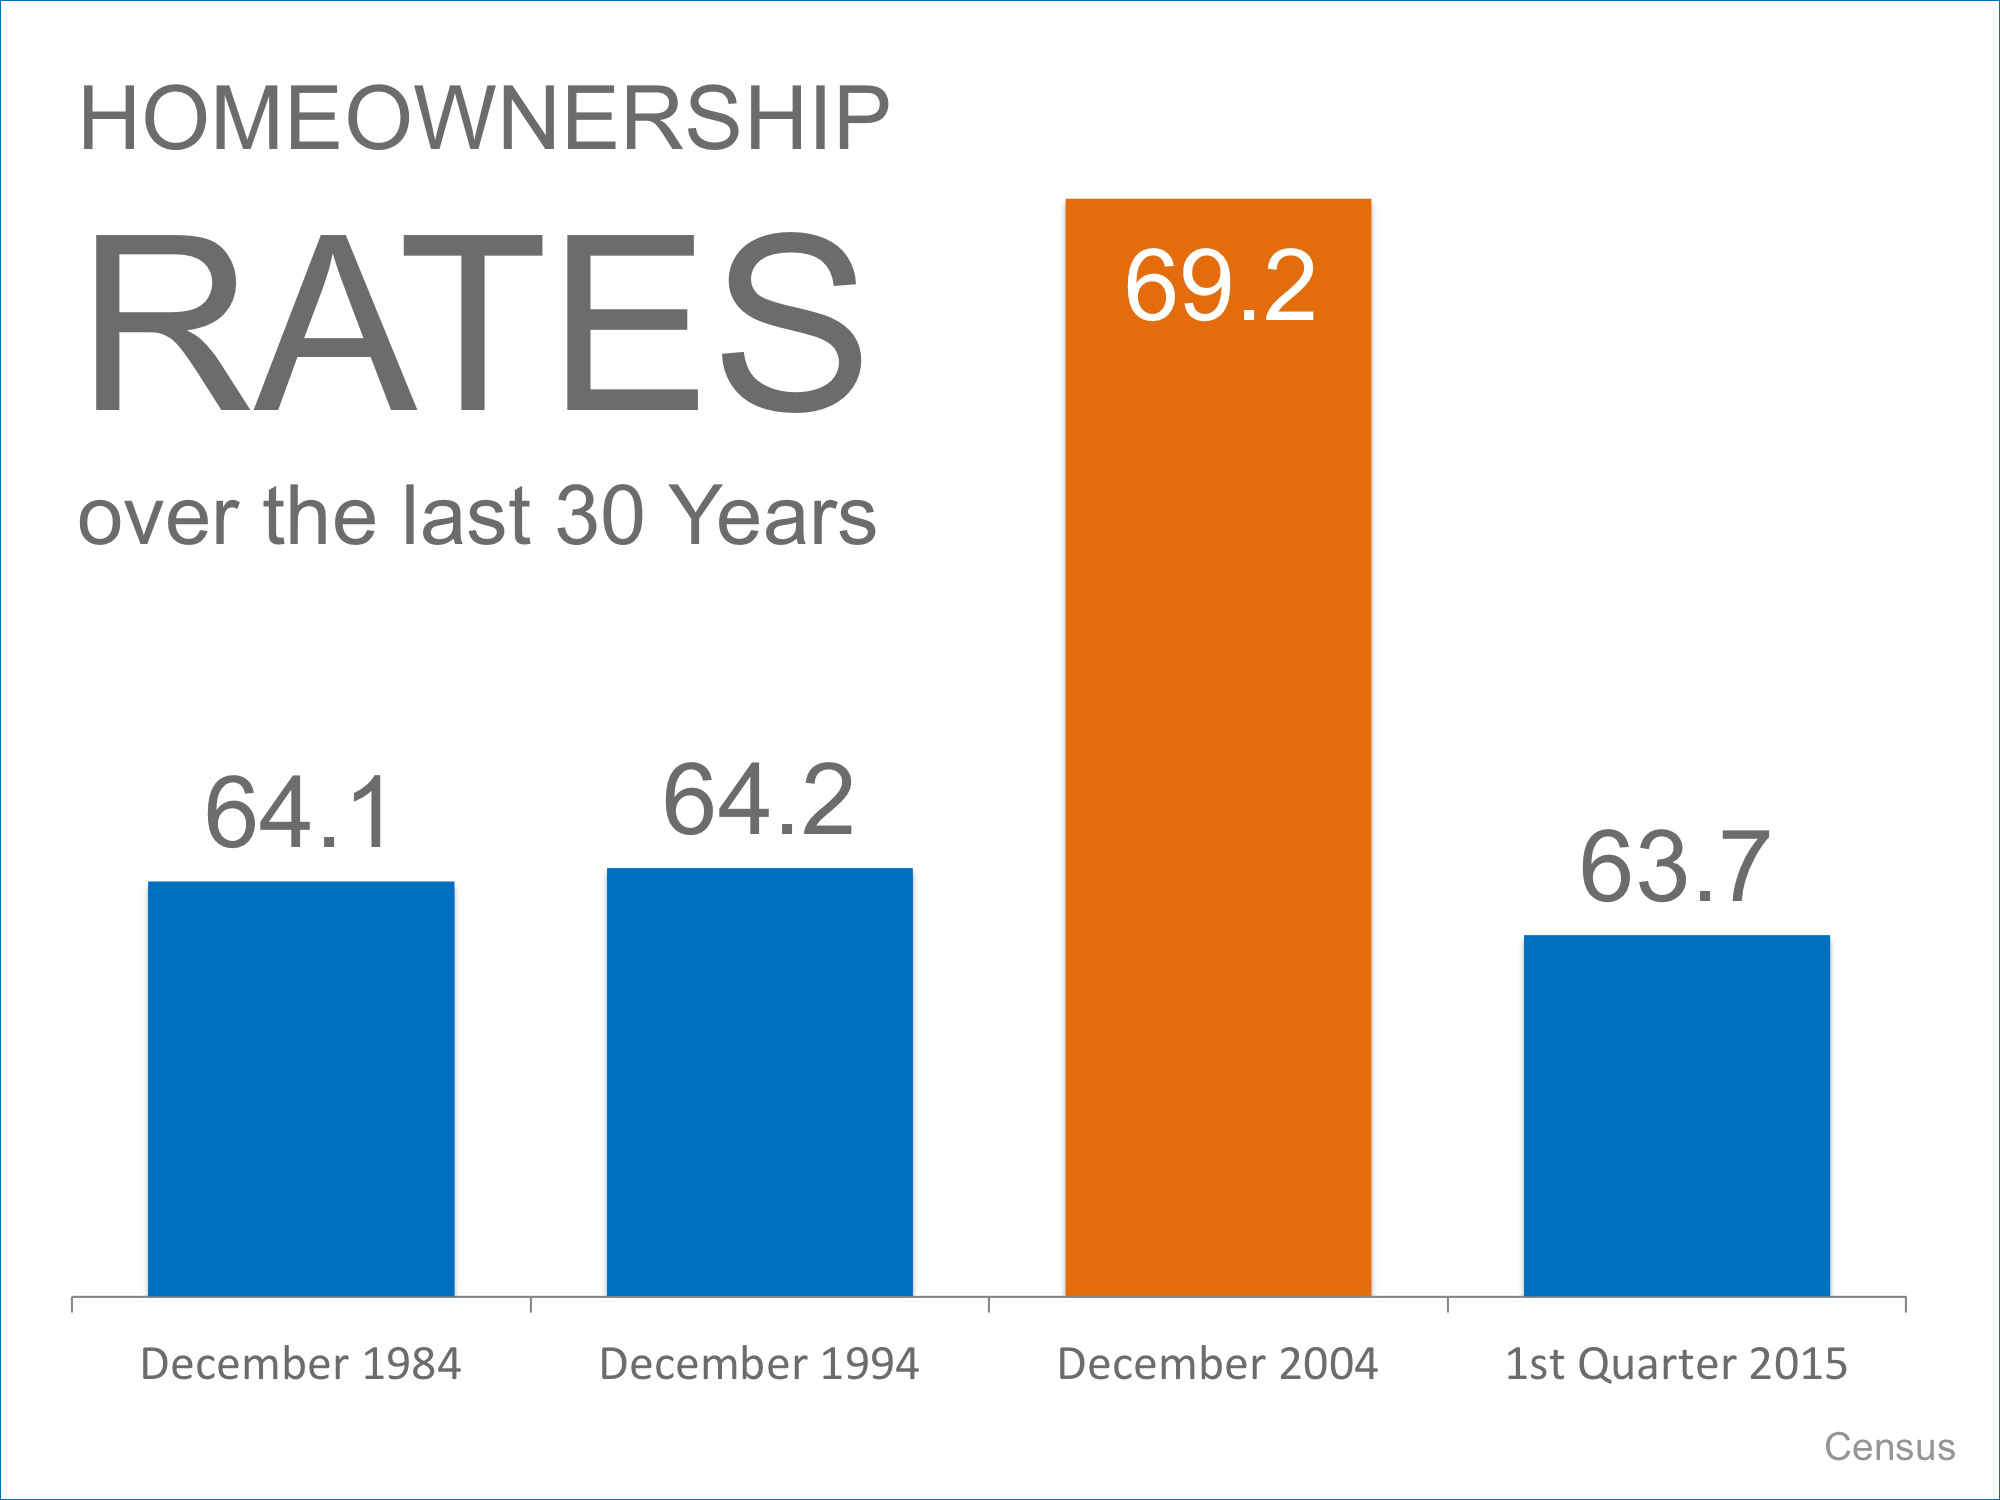 Easy Chicken Little: Homeownership Rates Are NOT Crashing | Simplifying The Market